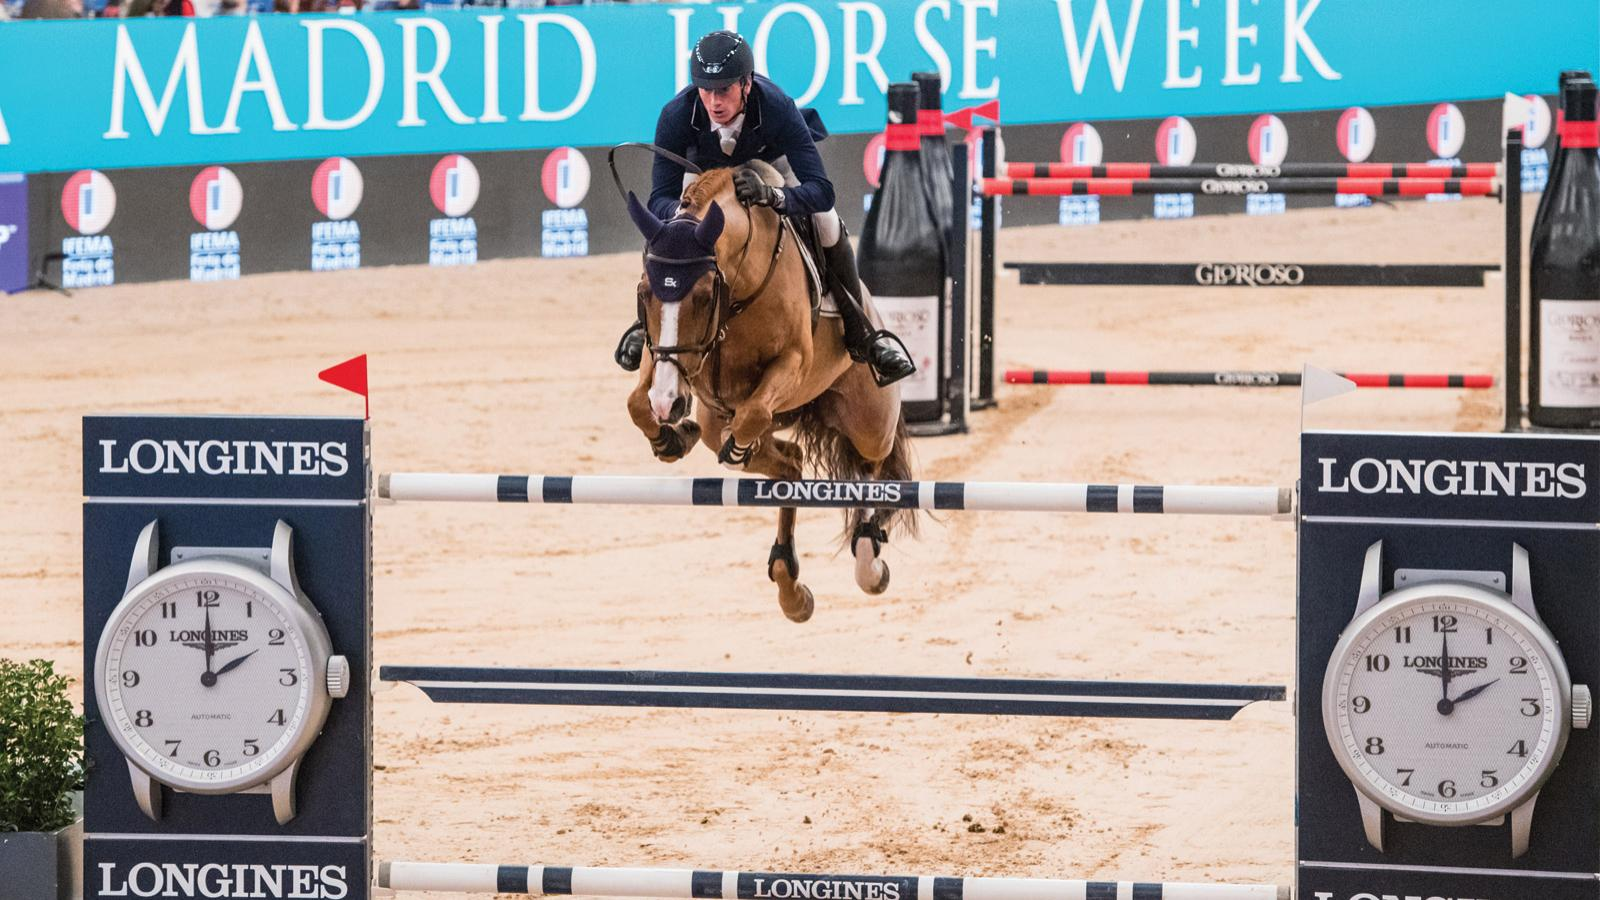 Longines FEI World Cup Western European League; Madrid Horse Week 2018